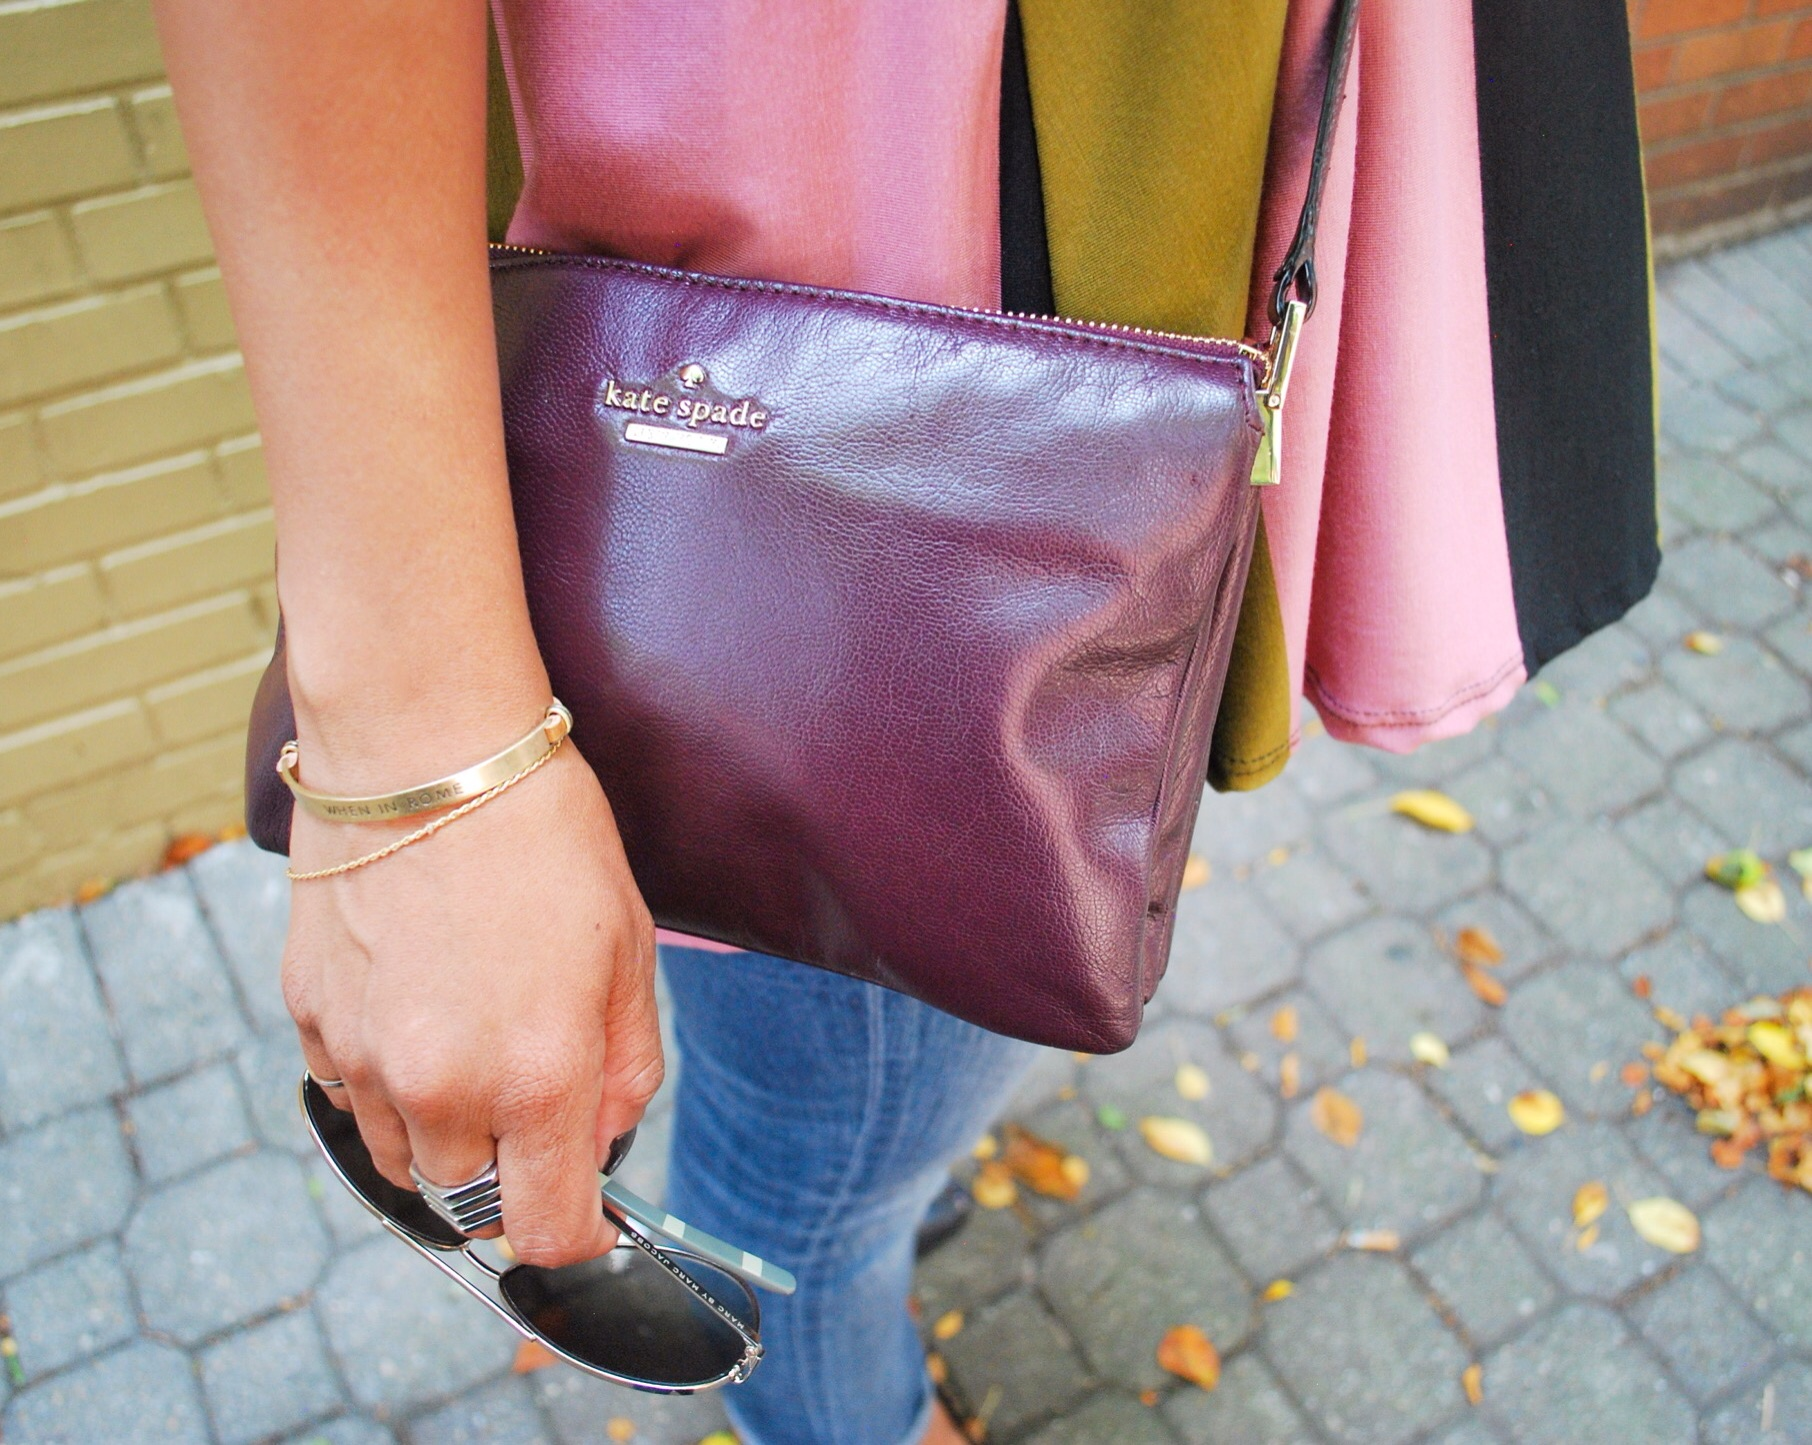 Kate Spade purple crossbody handbag